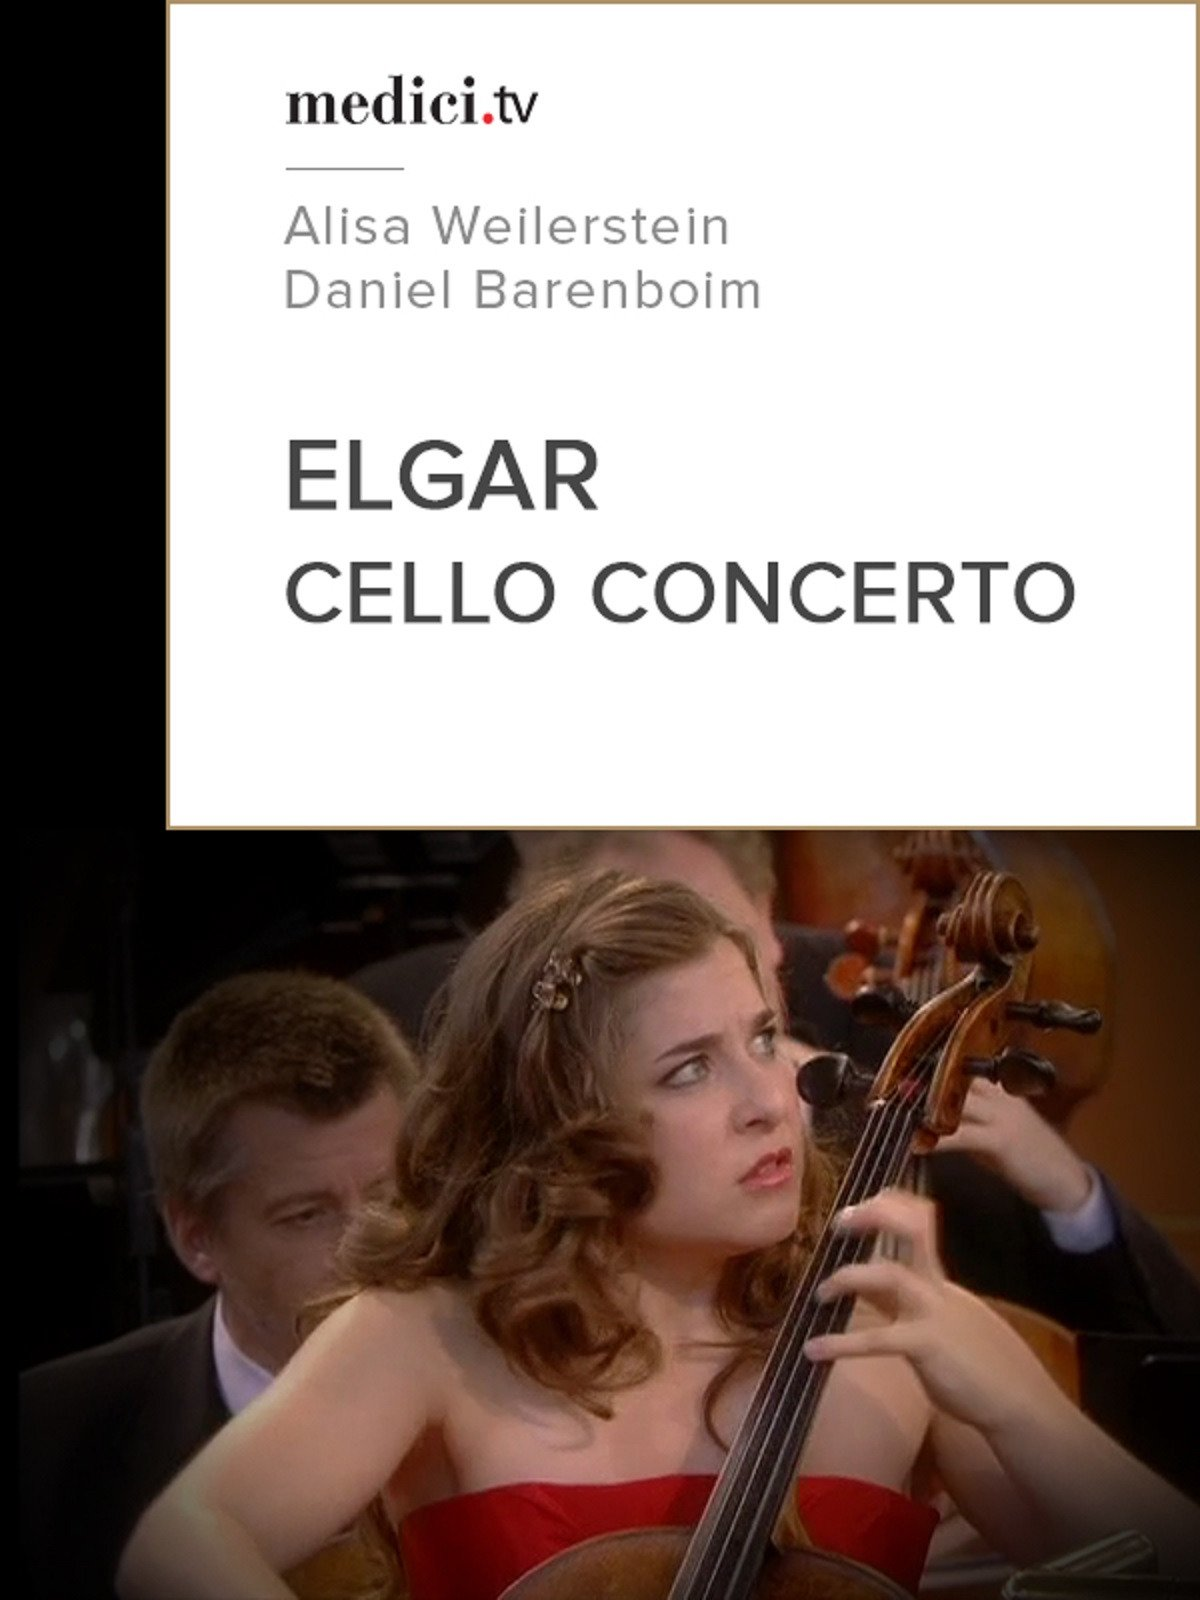 Elgar, Cello concerto